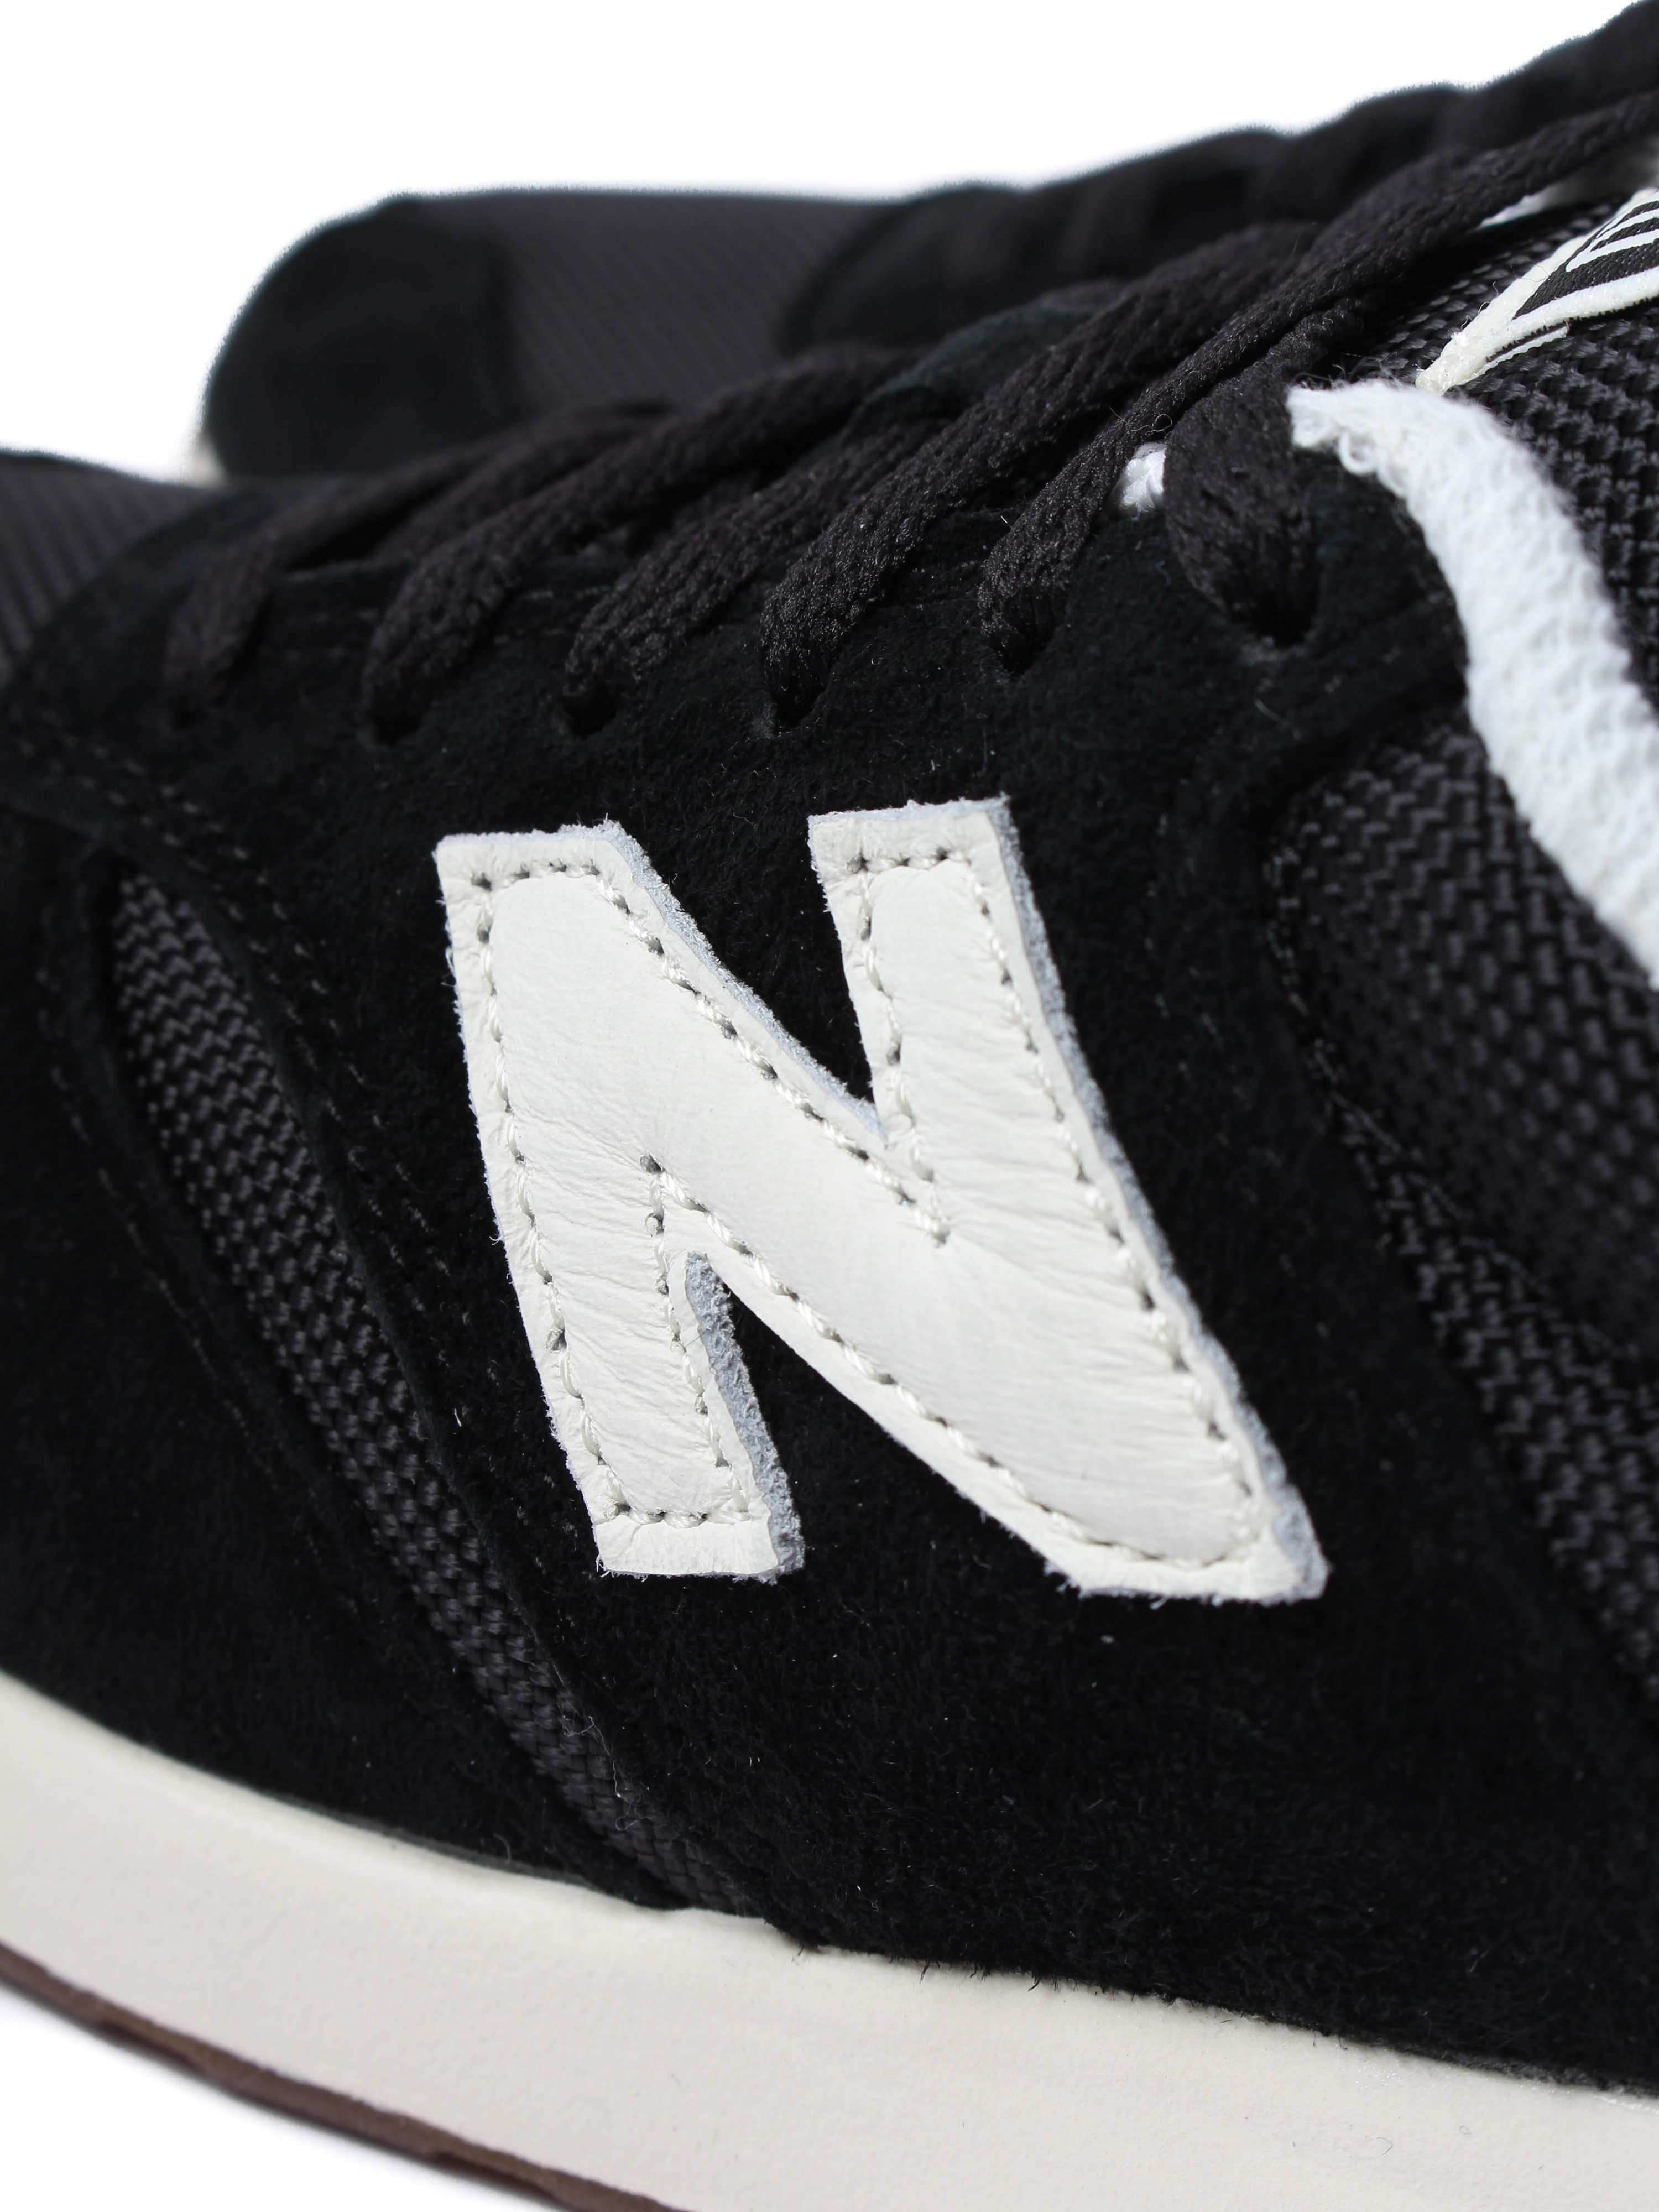 New Balance Women's 420 Trainers - Black Suede